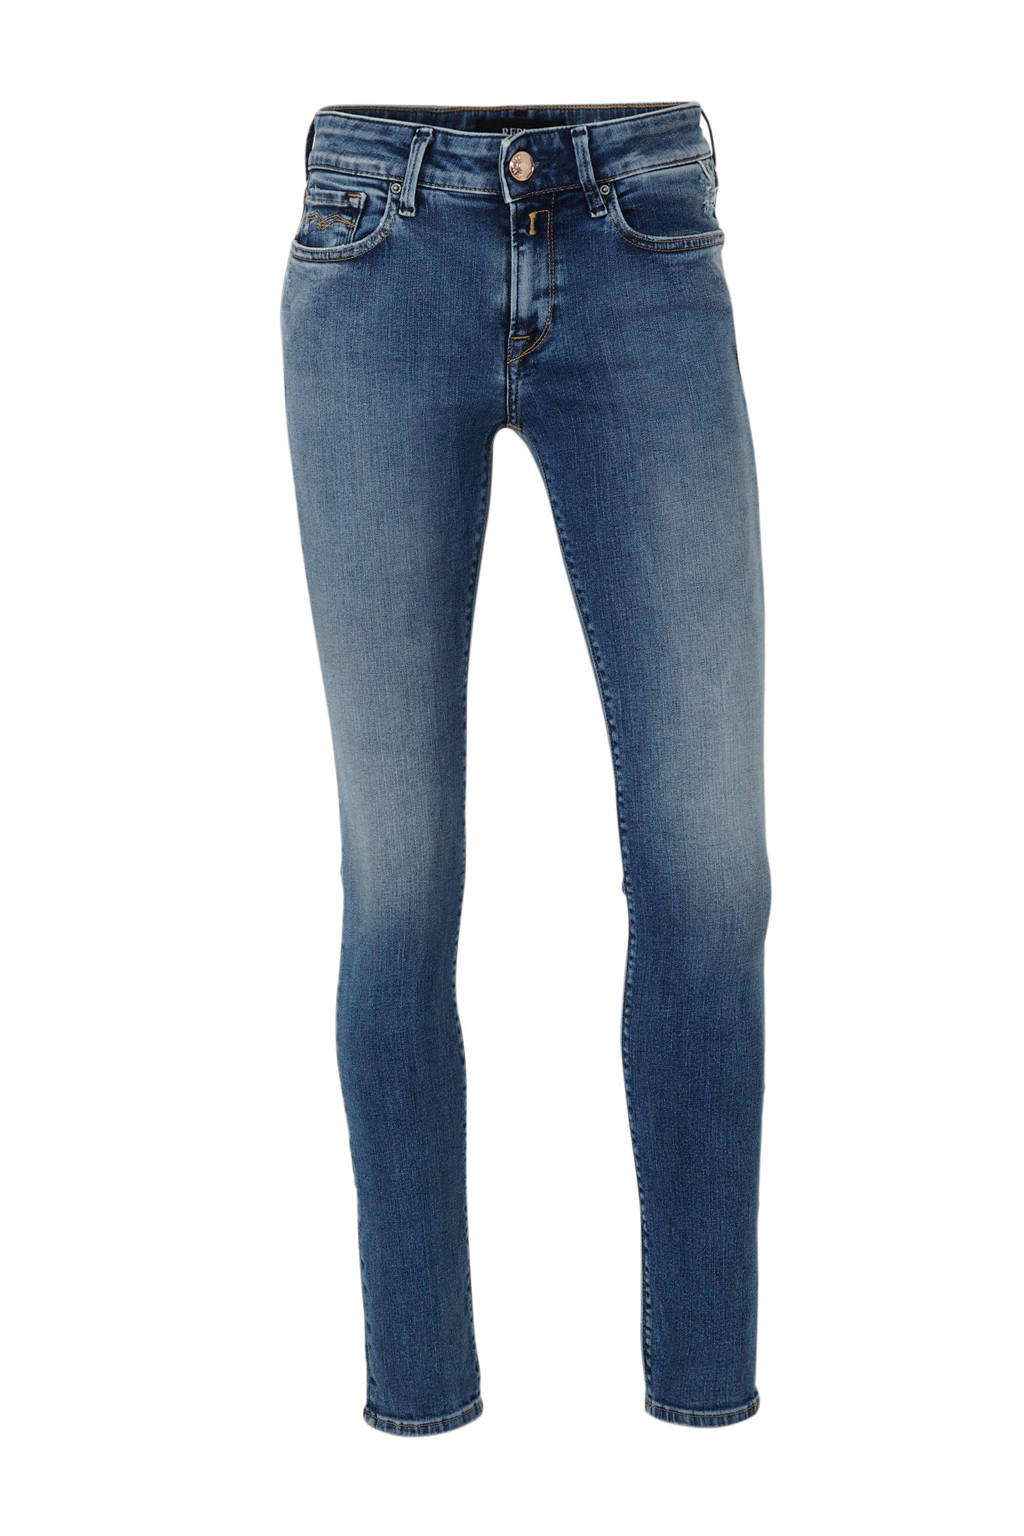 REPLAY skinny jeans NEW LUZ blauw, Blauw